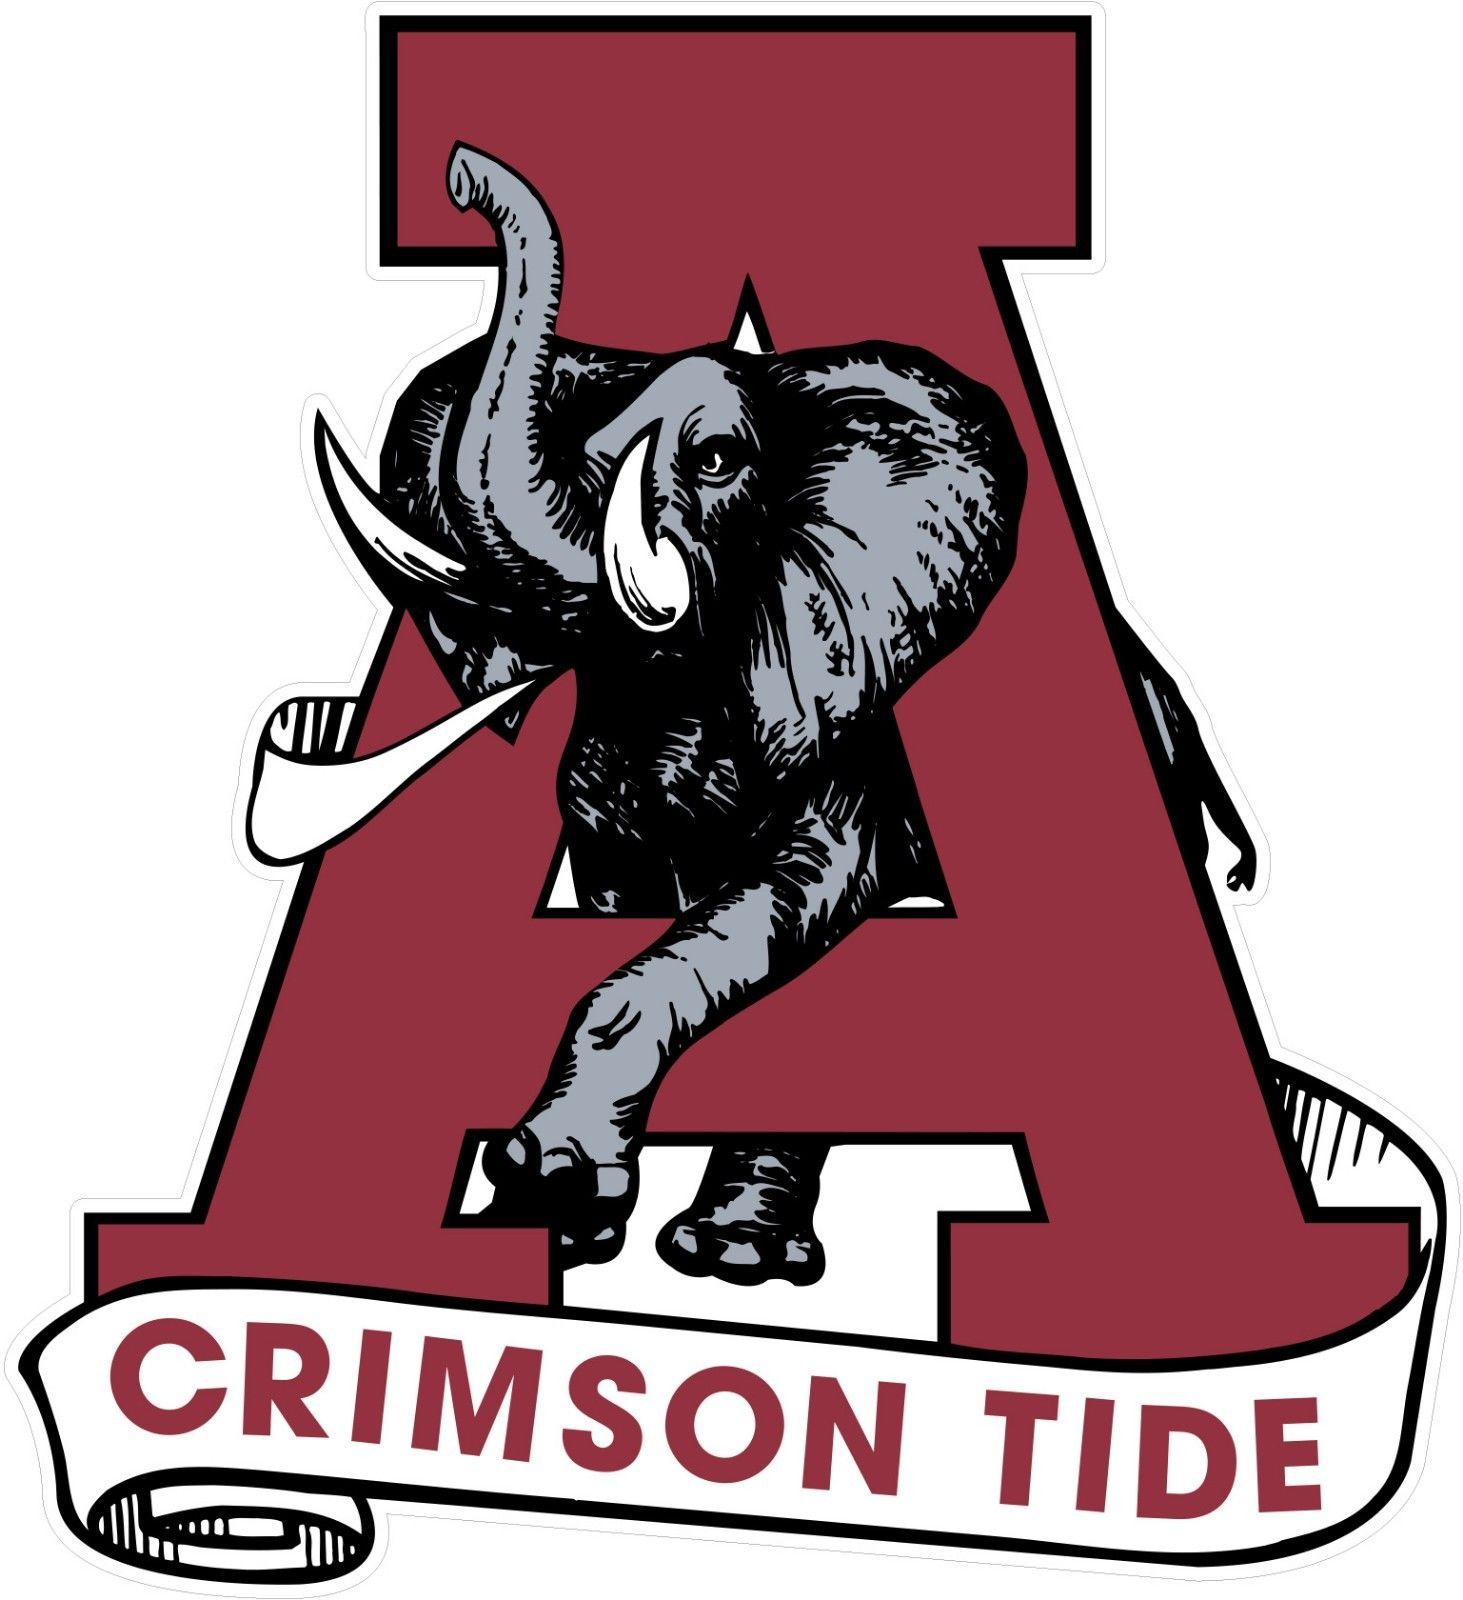 Alabama Crimson Tide Football Full Color Logo Decal Sticker